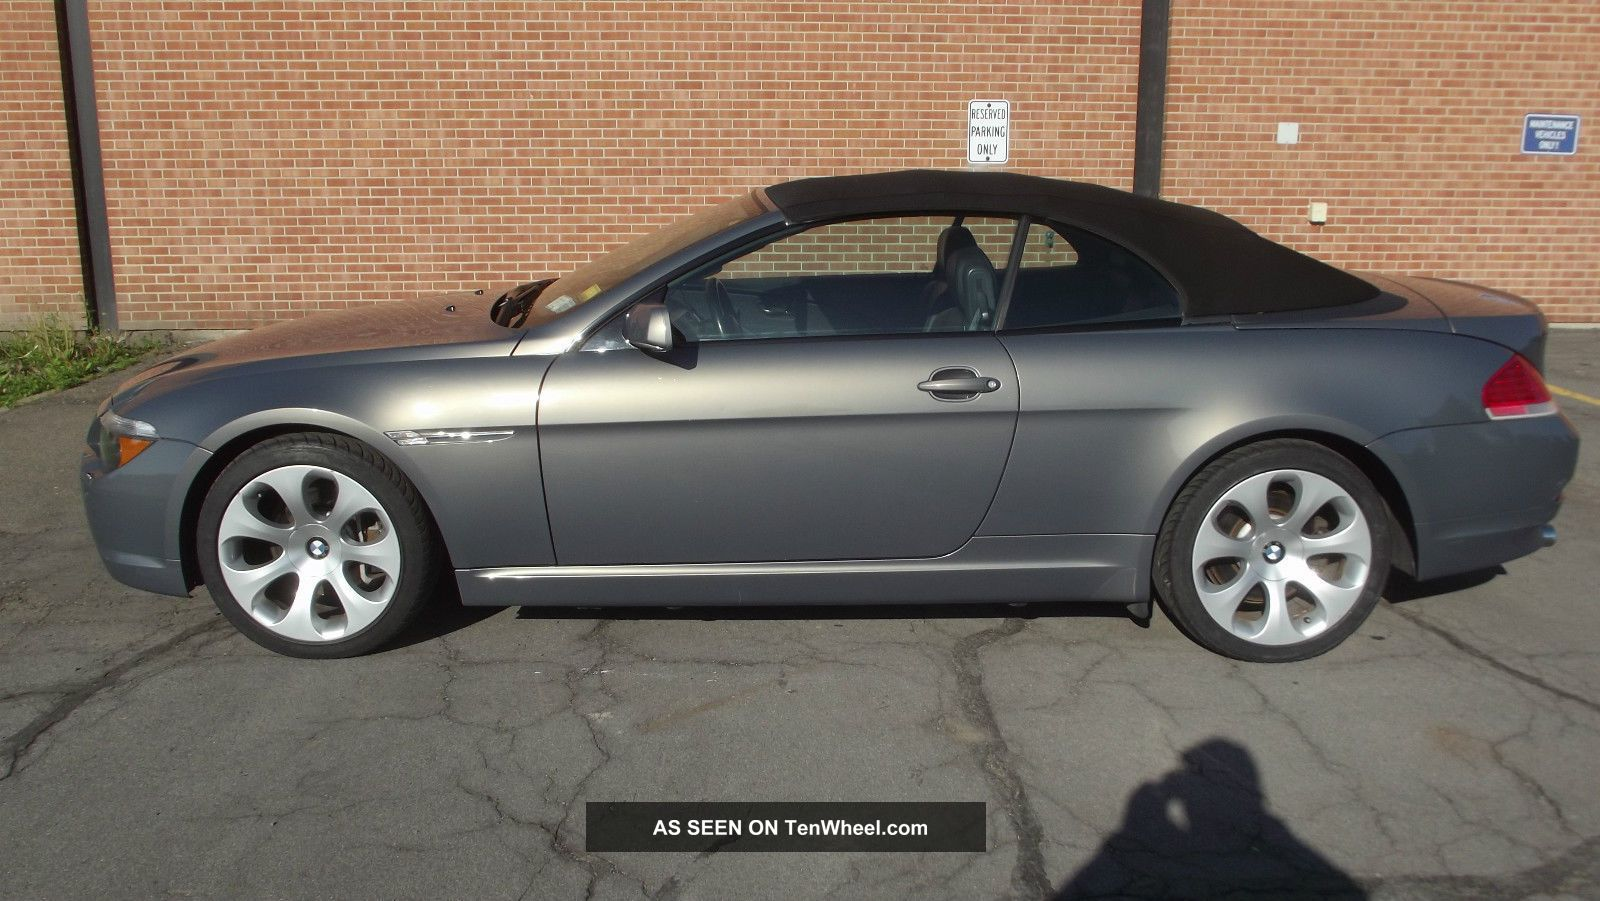 2005 Bmw 645ci 645 Ci Convertible Financing Available 6-Series photo